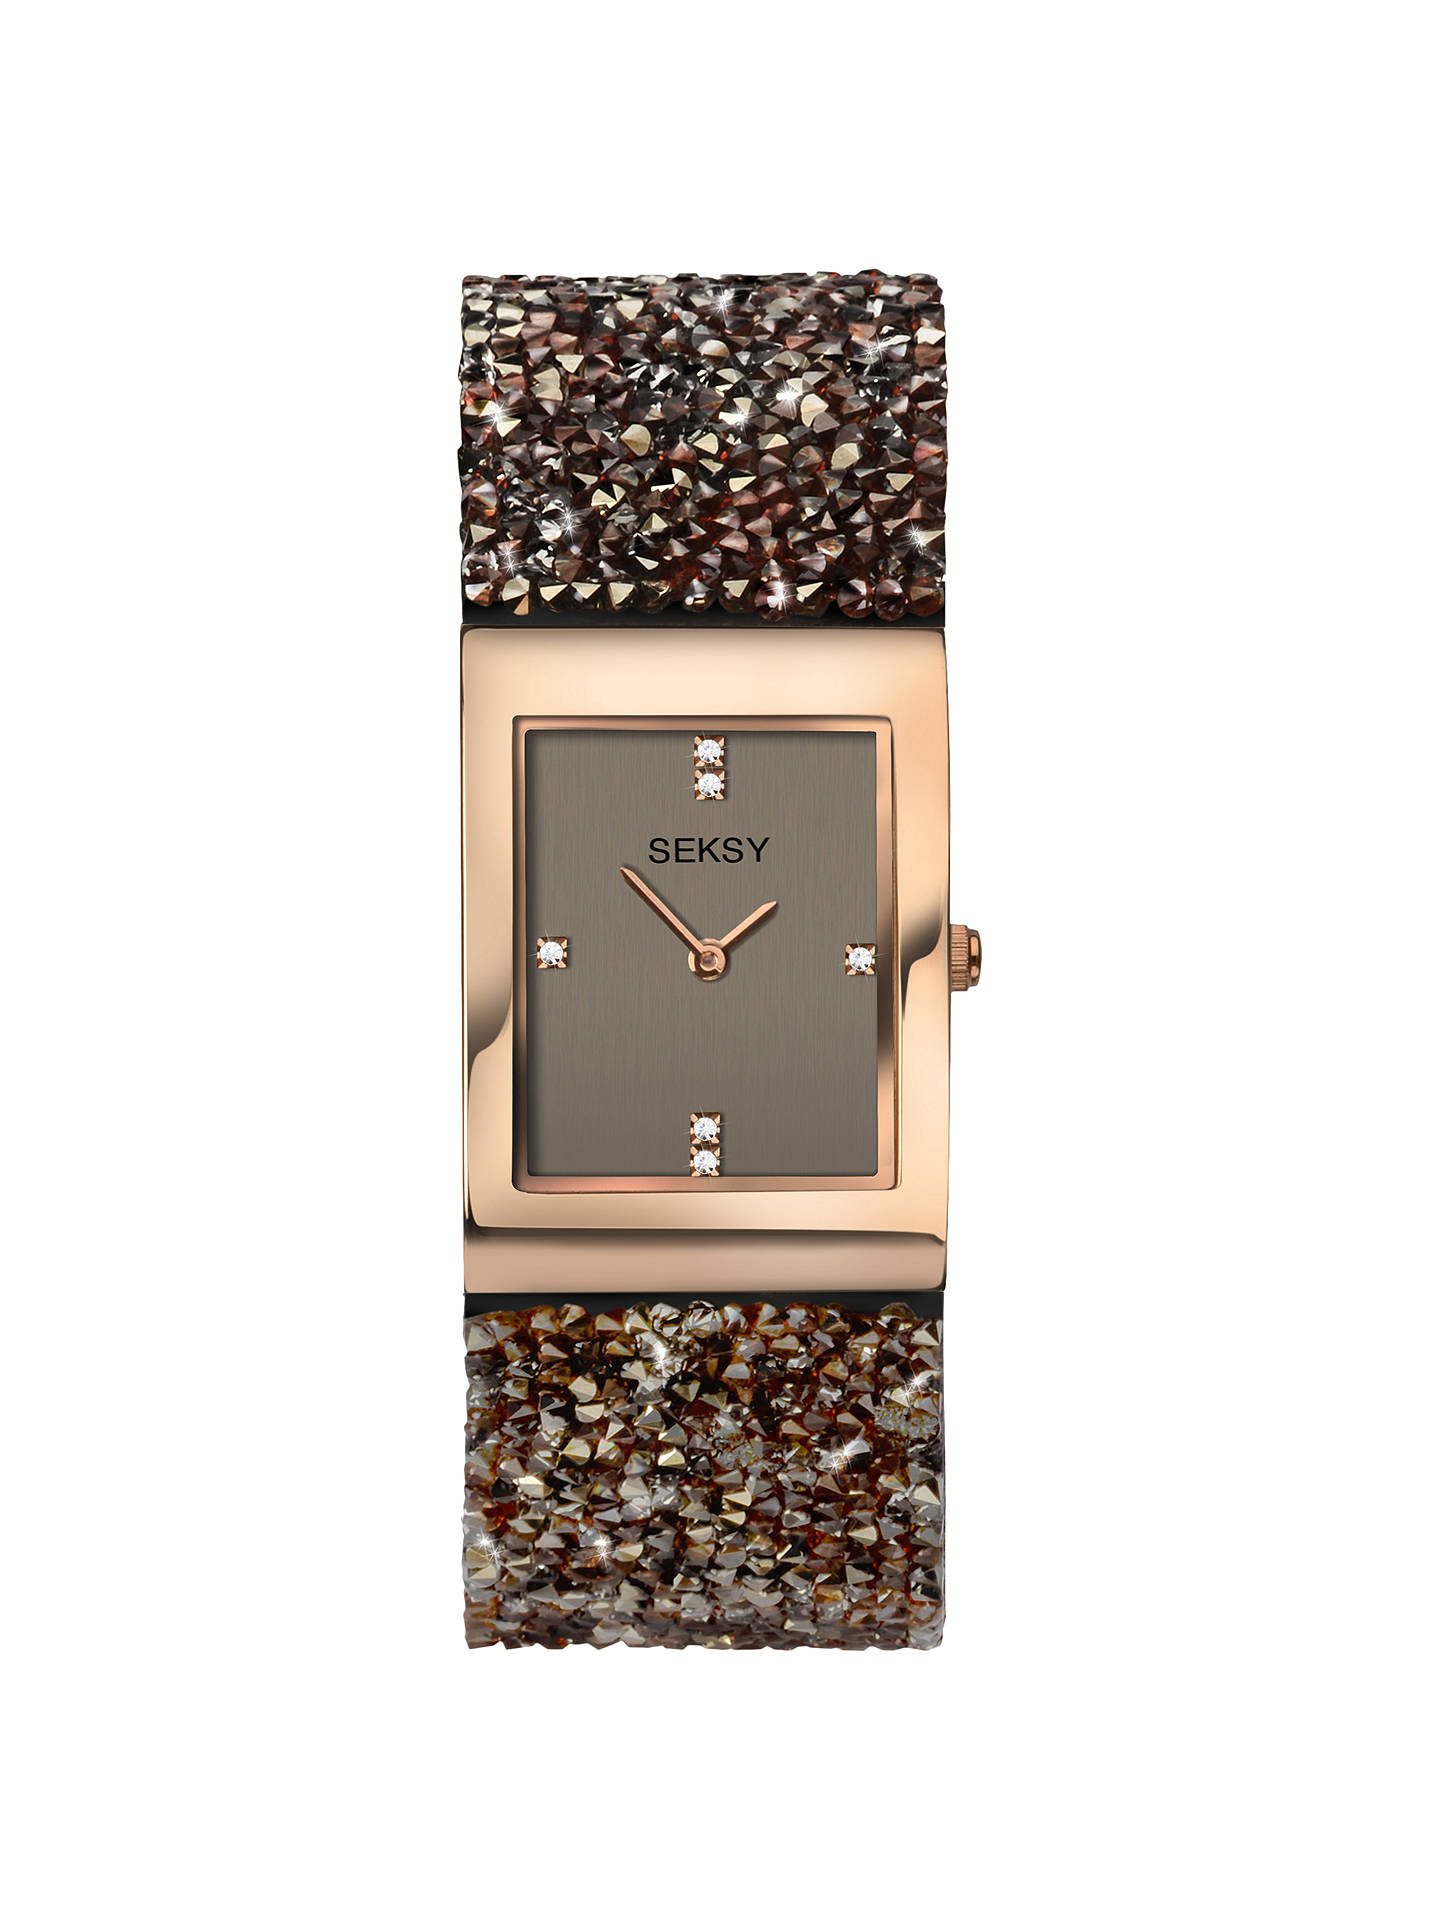 BuySekonda Women's Seksy Crystal Rock Bracelet Strap Watch, Multi/Chocolate 2580.37 Online at johnlewis.com